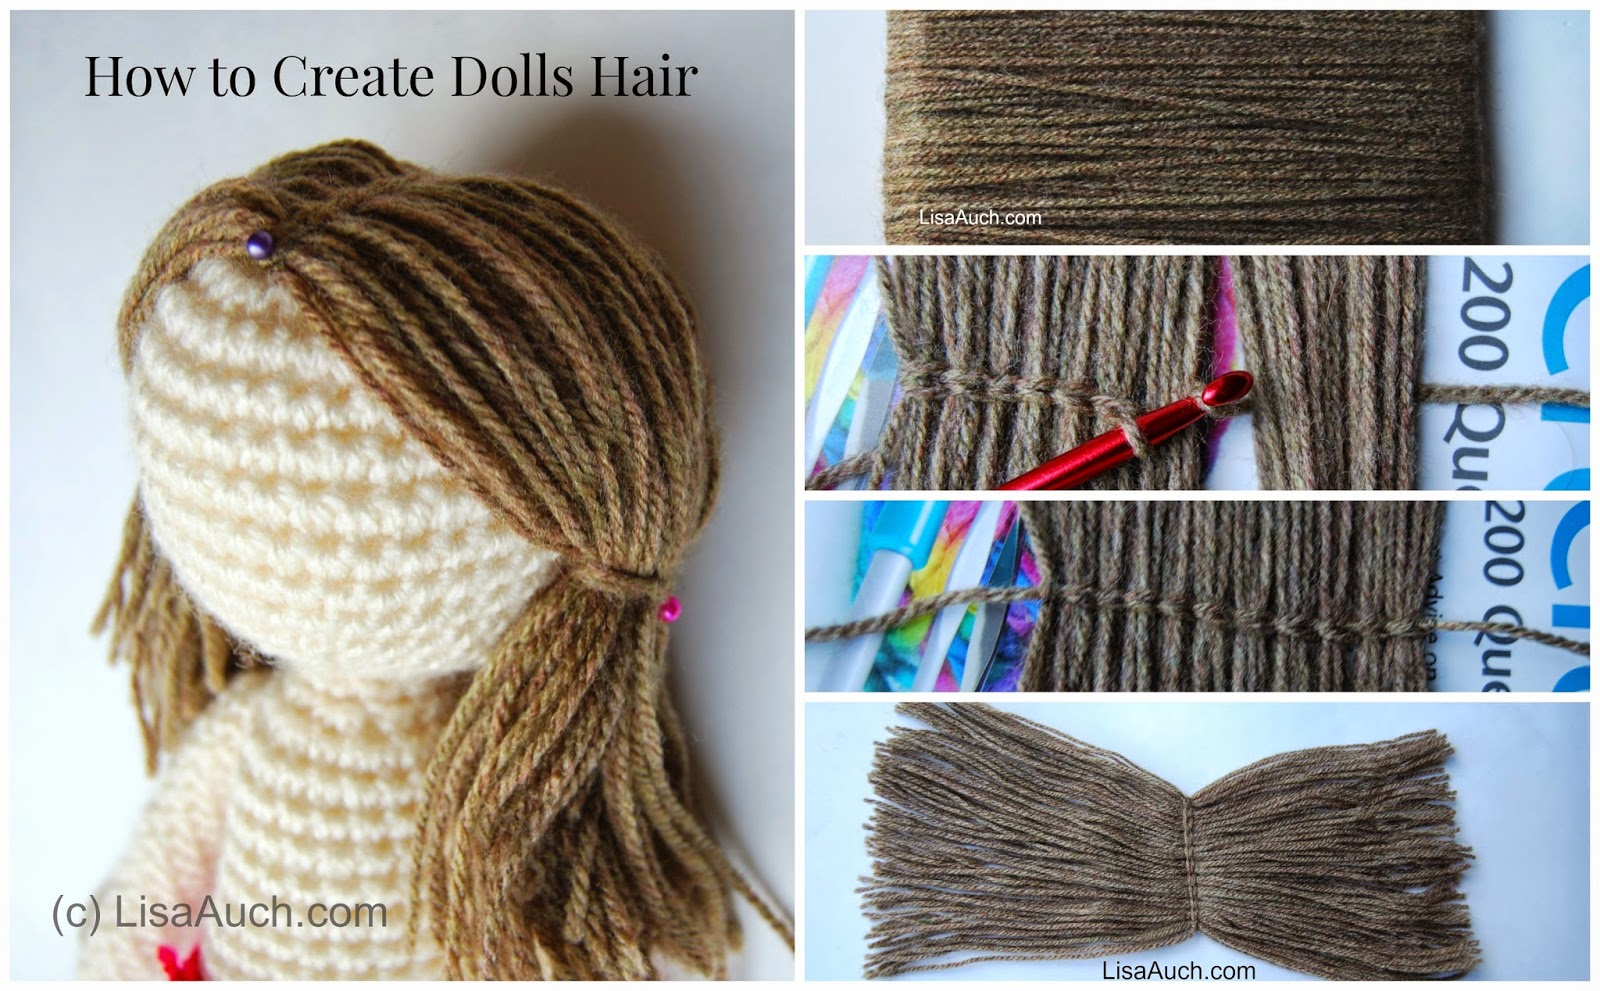 Crochet Hair How To : How to Crochet Dolls Hair (easy) Free Crochet Patterns and Designs ...